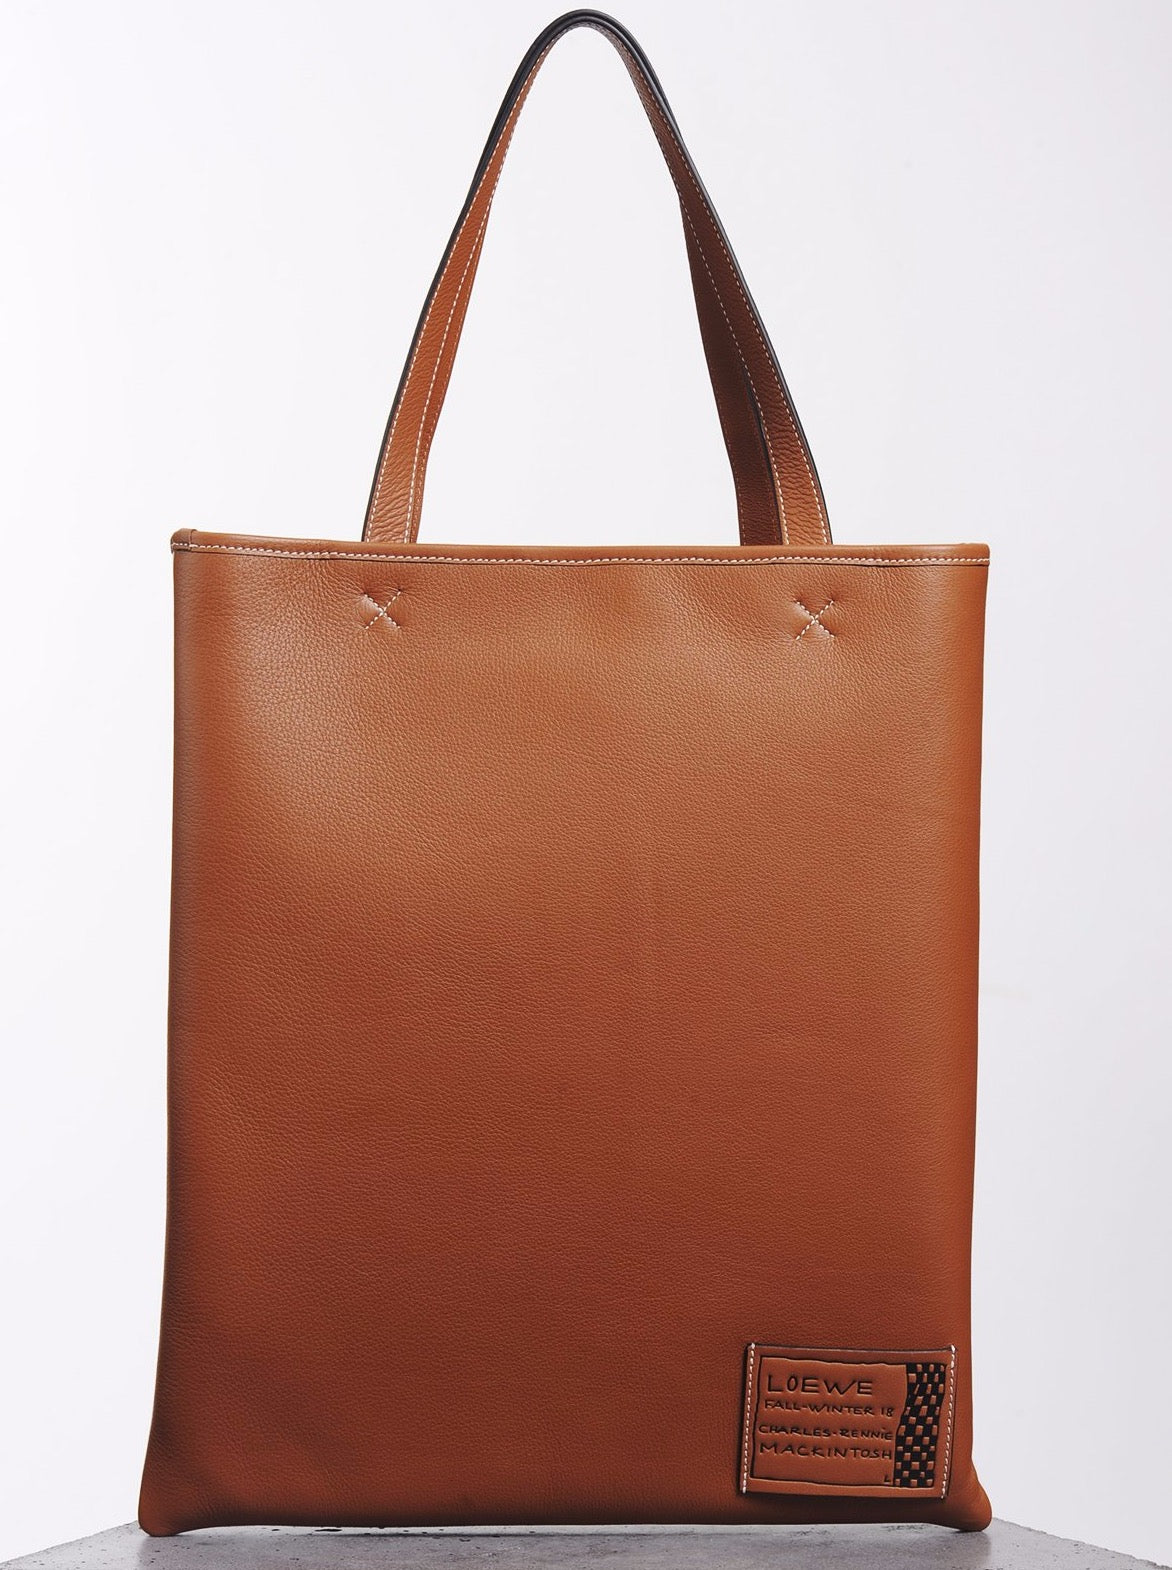 VERTICAL TOTE BLACKTHORN BAG